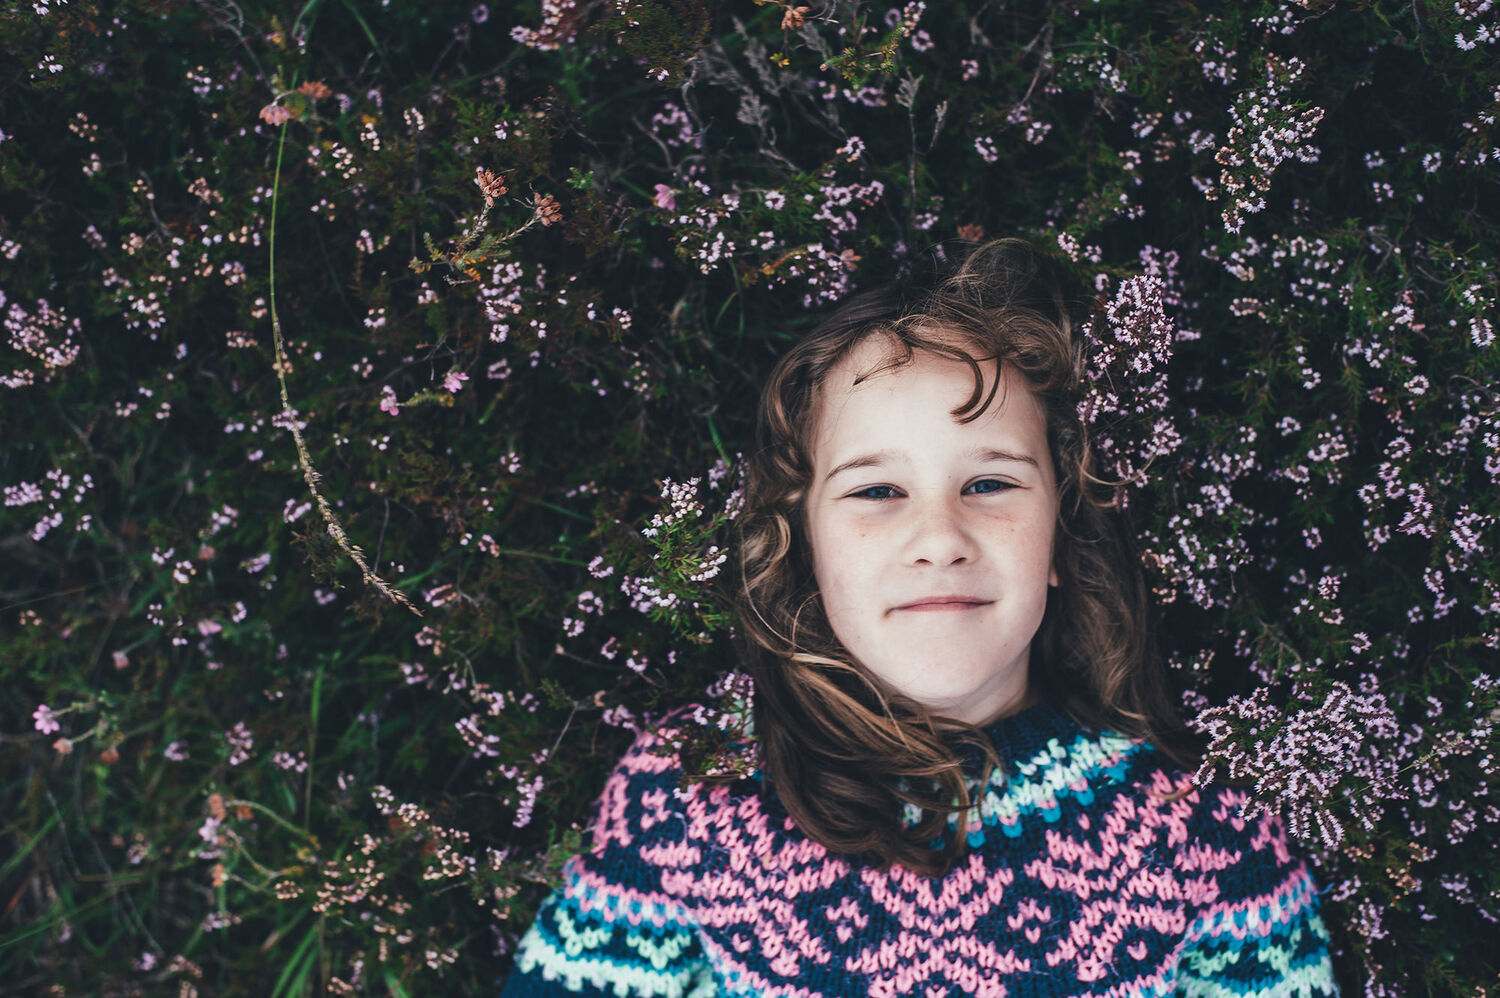 Girl in colourful woollen jumper leaning against hedge with flowers